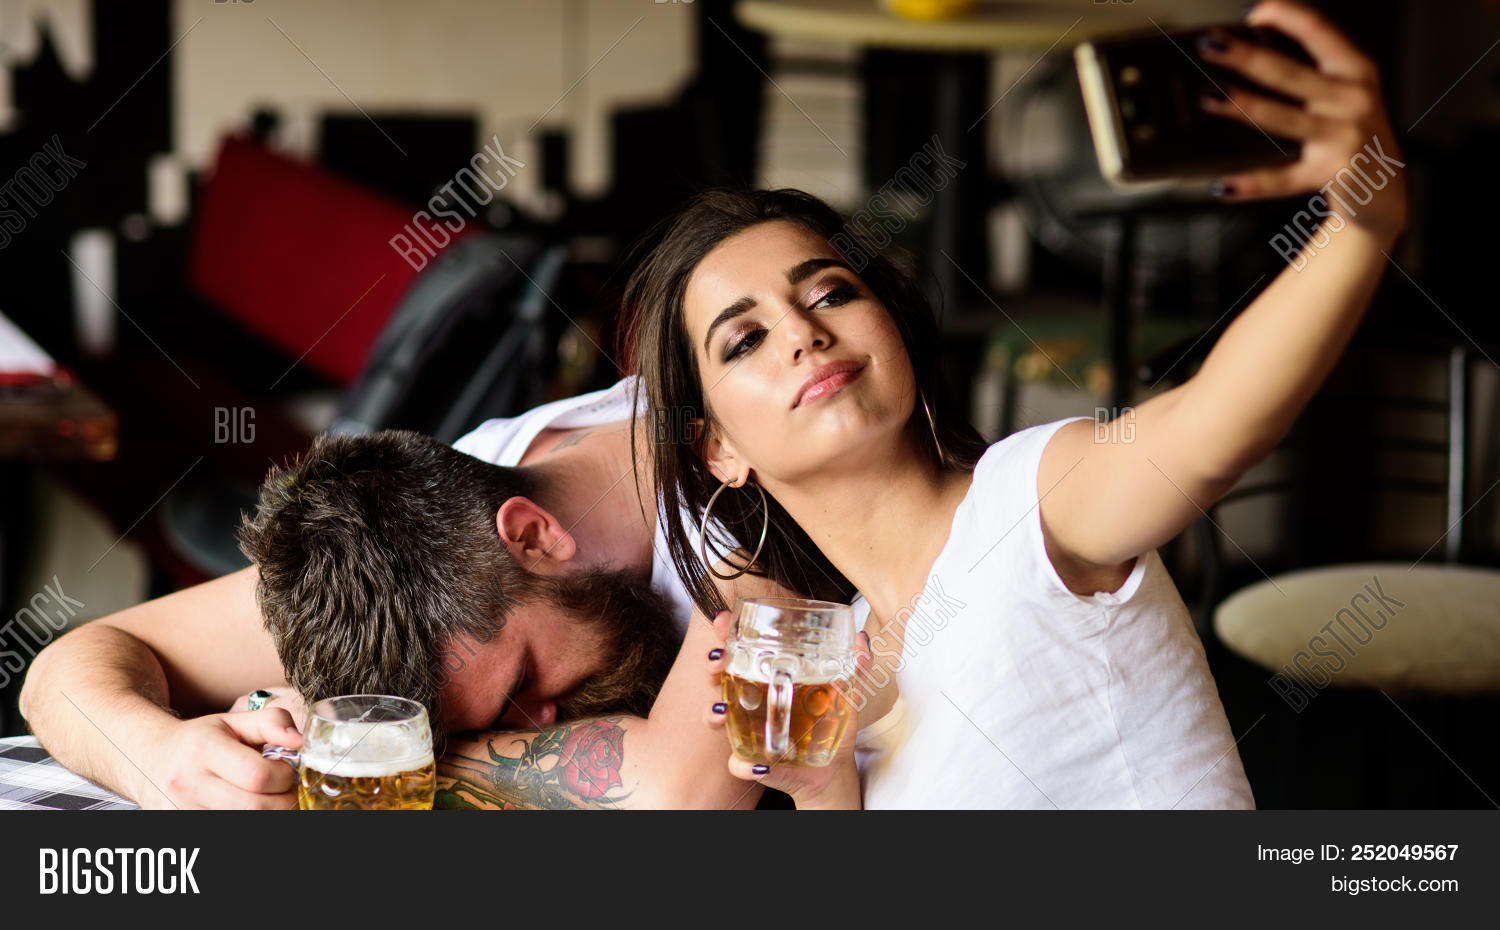 Take Selfie To Remember Great Event. Woman Making Fun Of Drunk Friend. Man Drunk Fall Asleep Table A